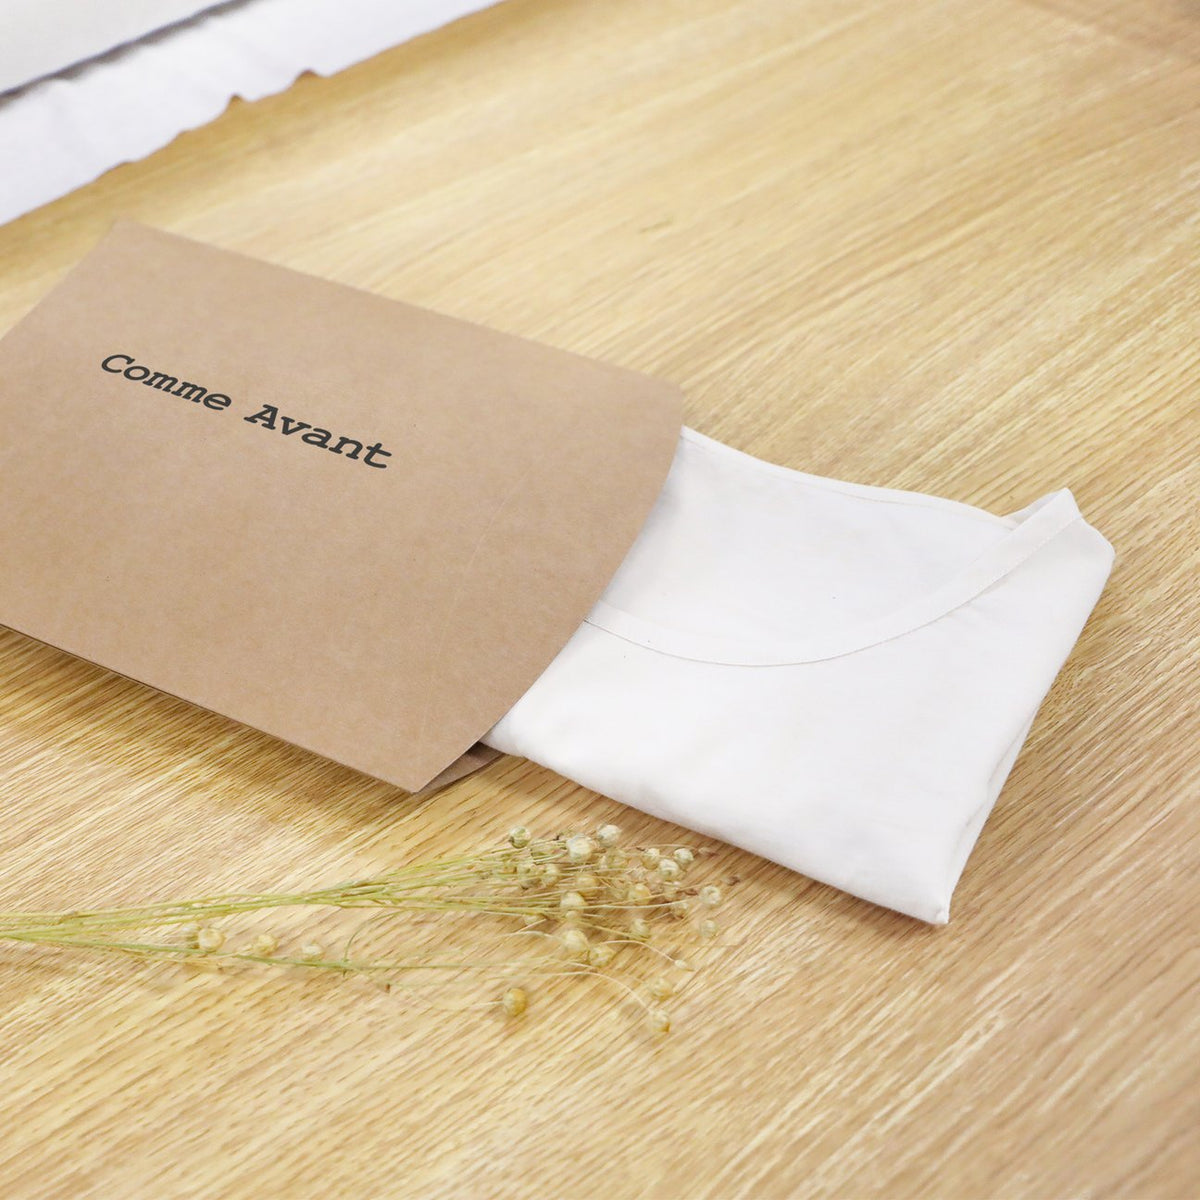 A natural and simple packaging